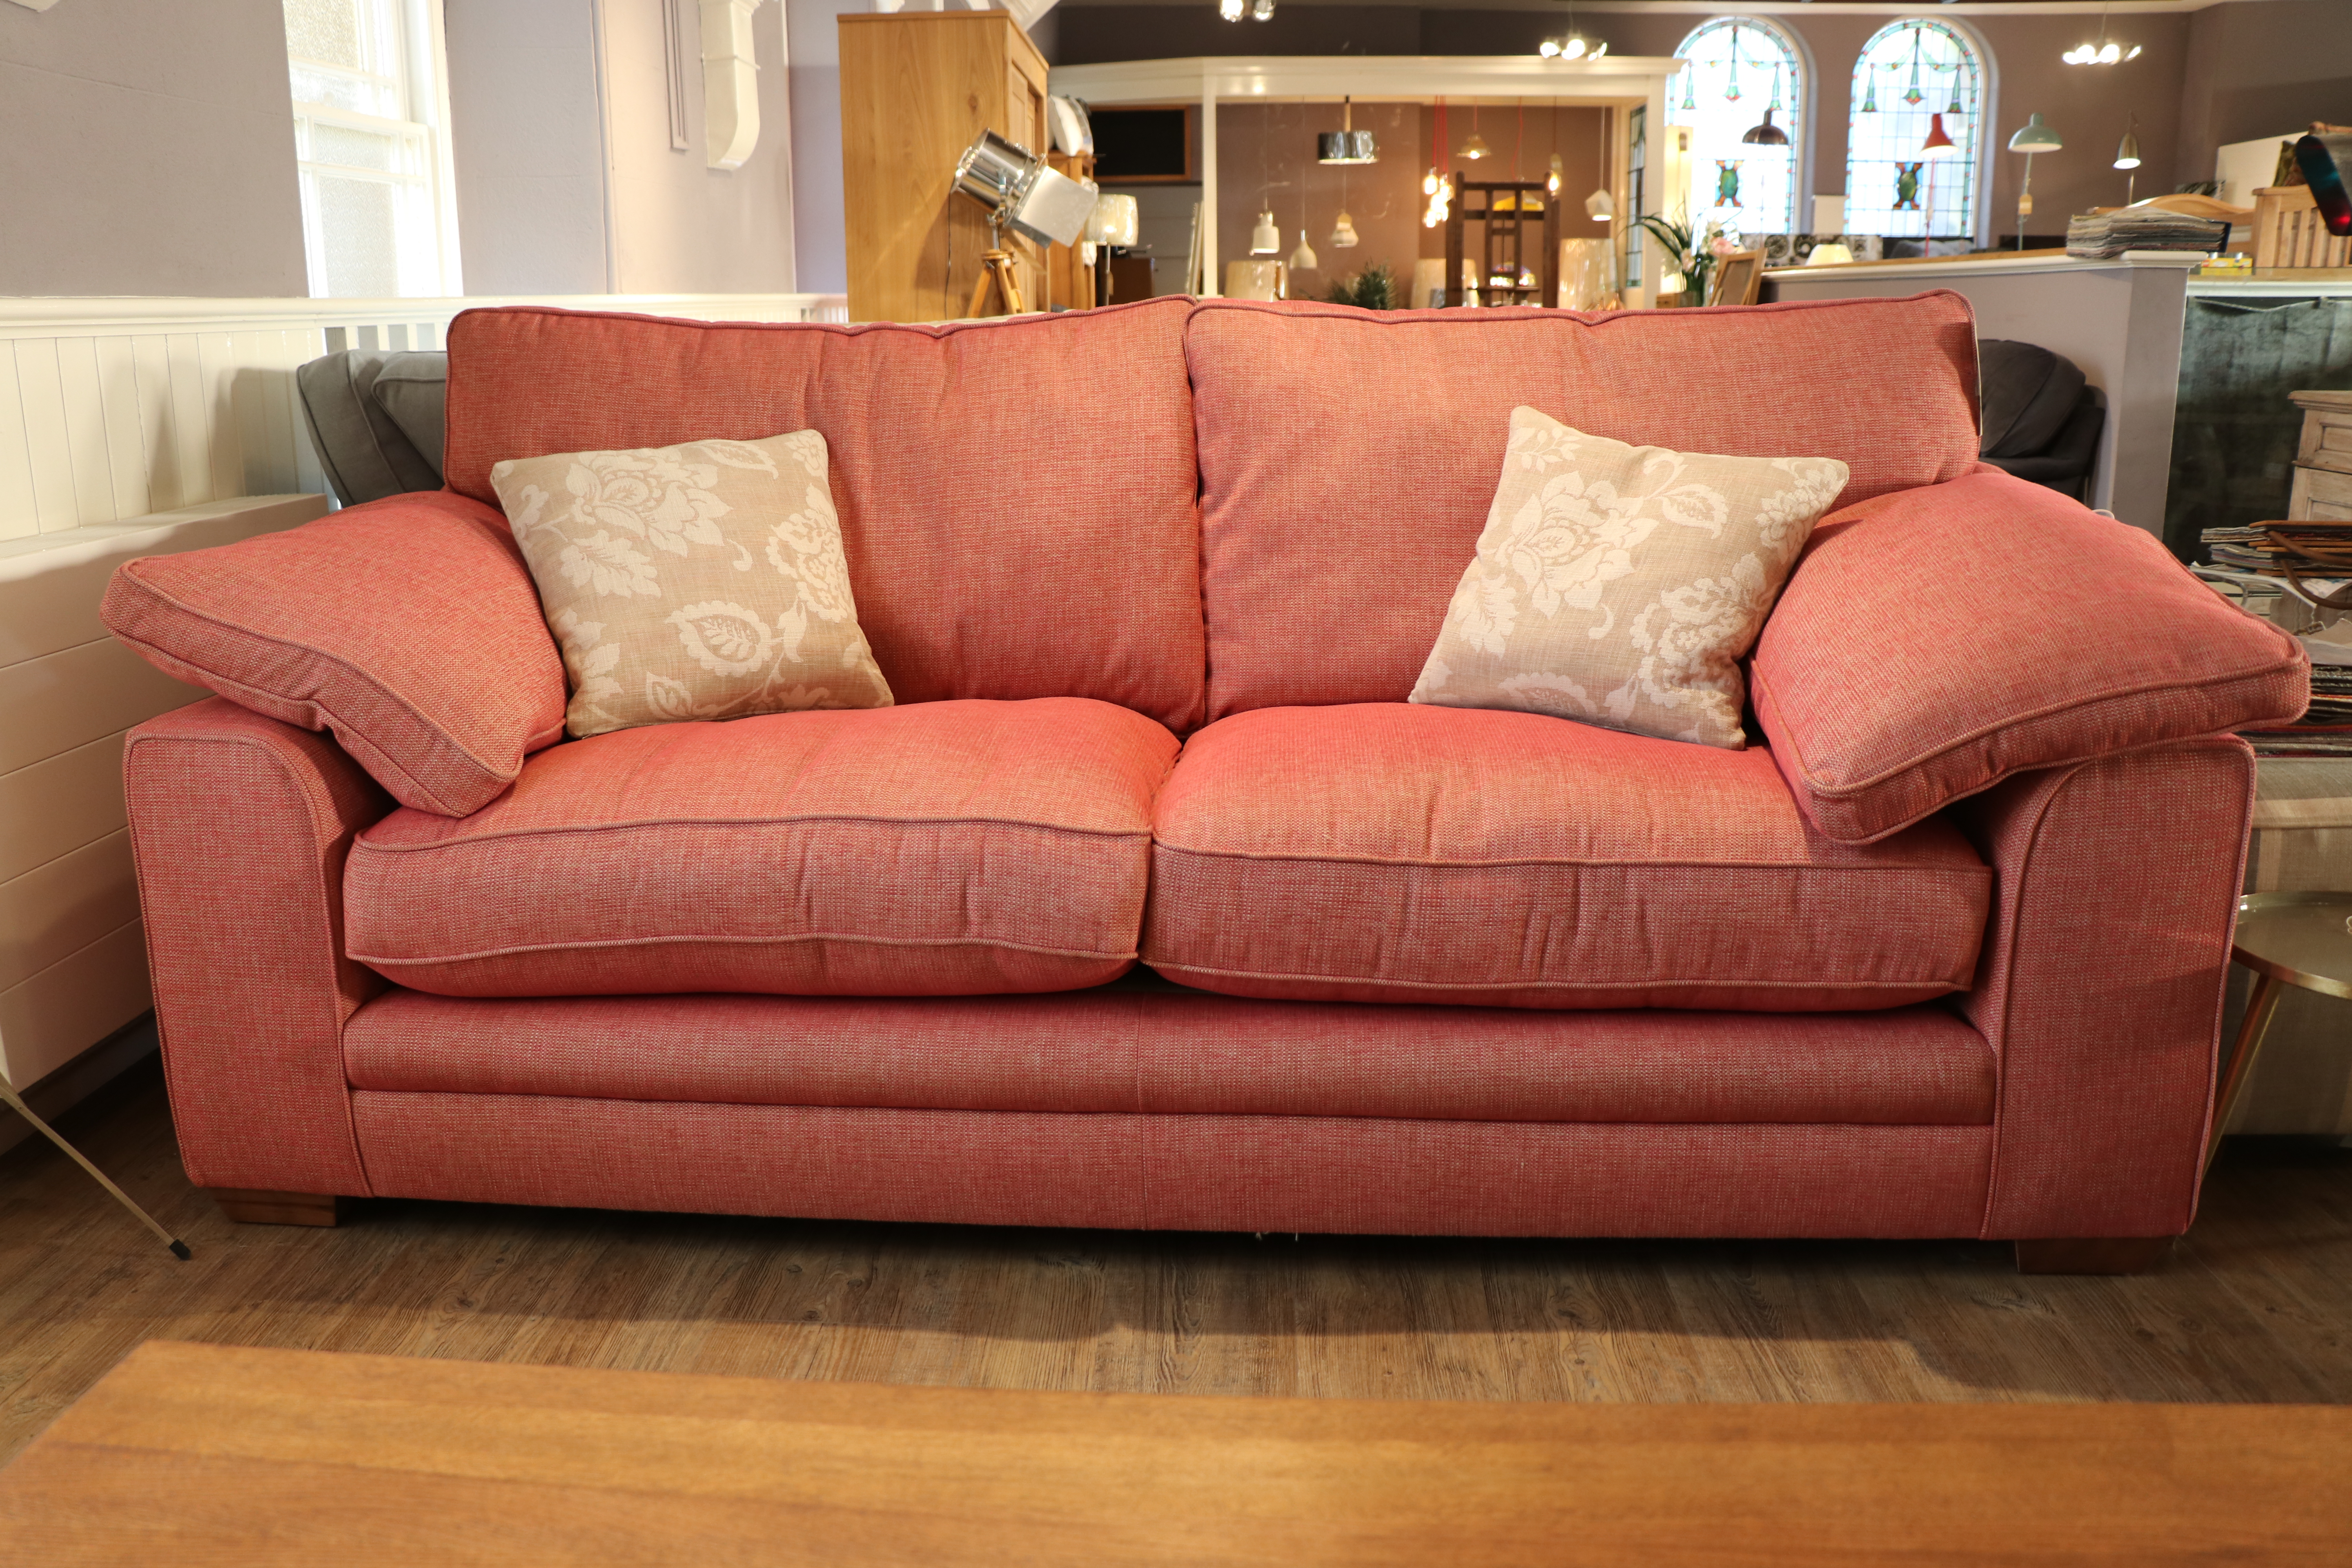 Marcy Sofa in Store